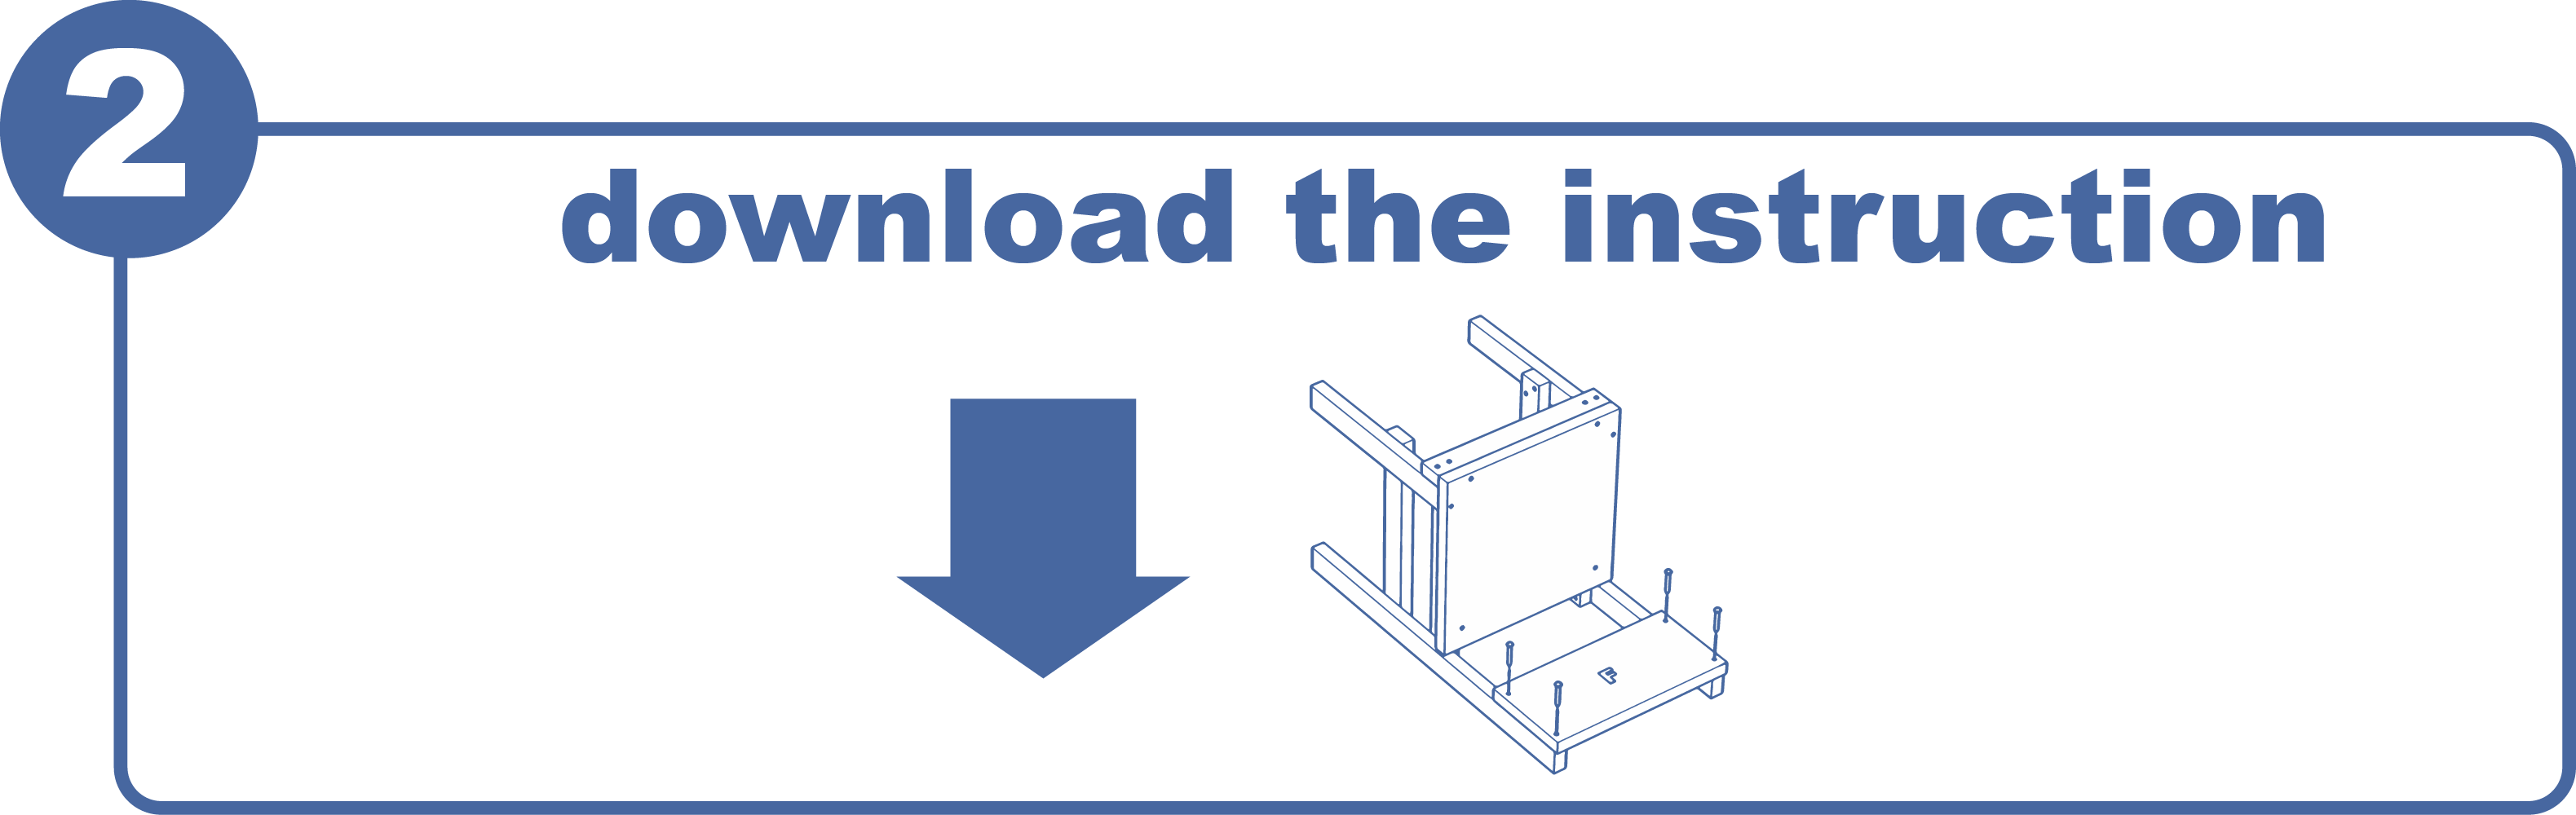 2 download instruction